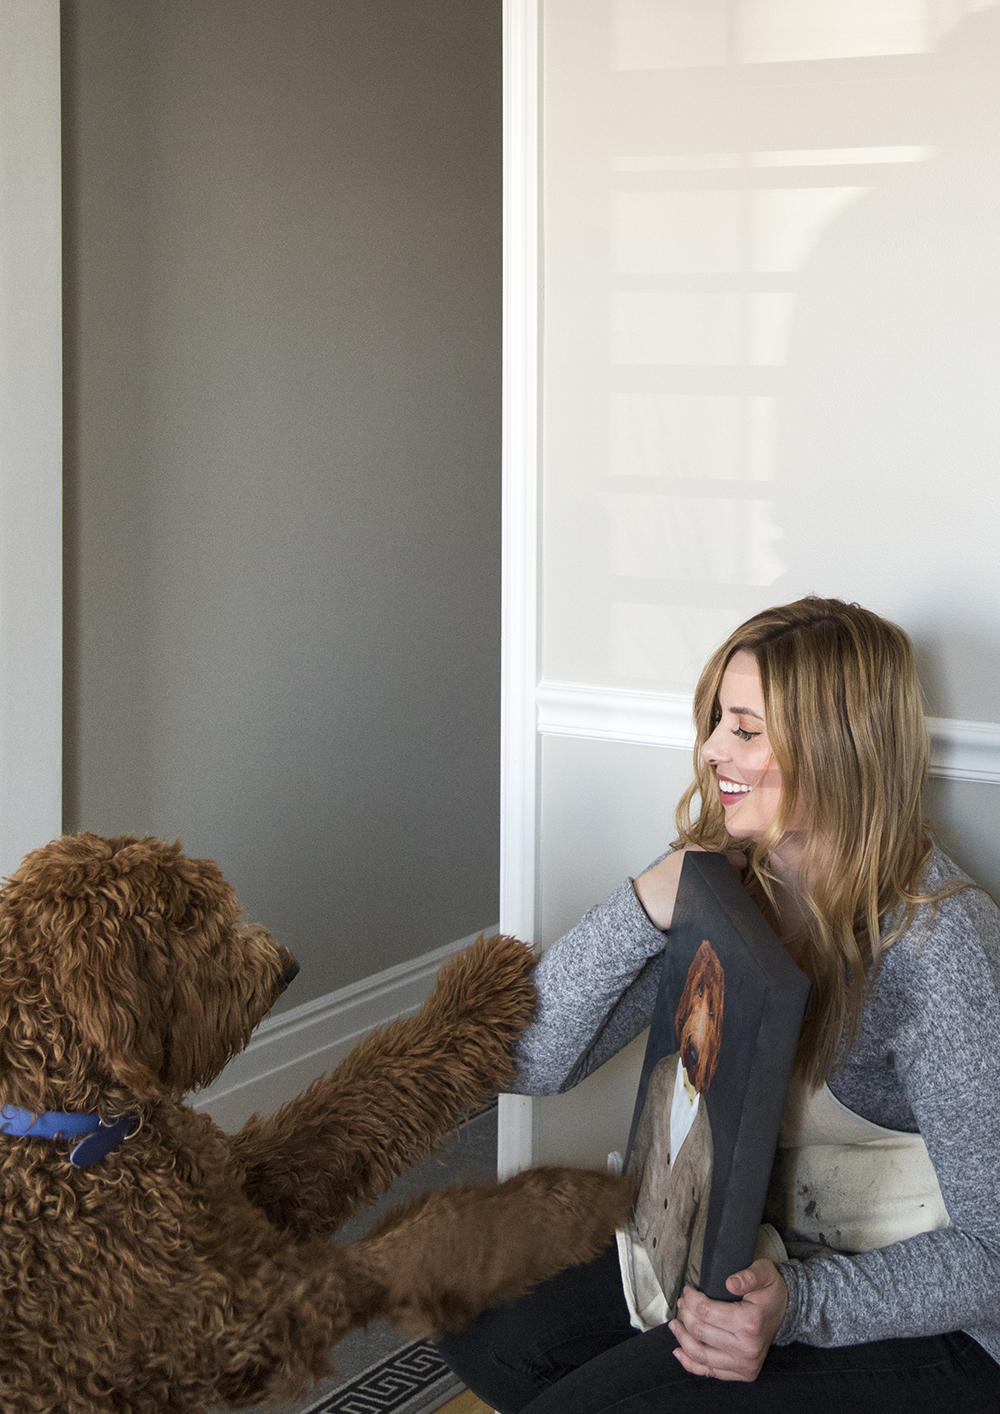 10 Smart & Creative Ideas for Homes with Dogs - roomfortuesday.com